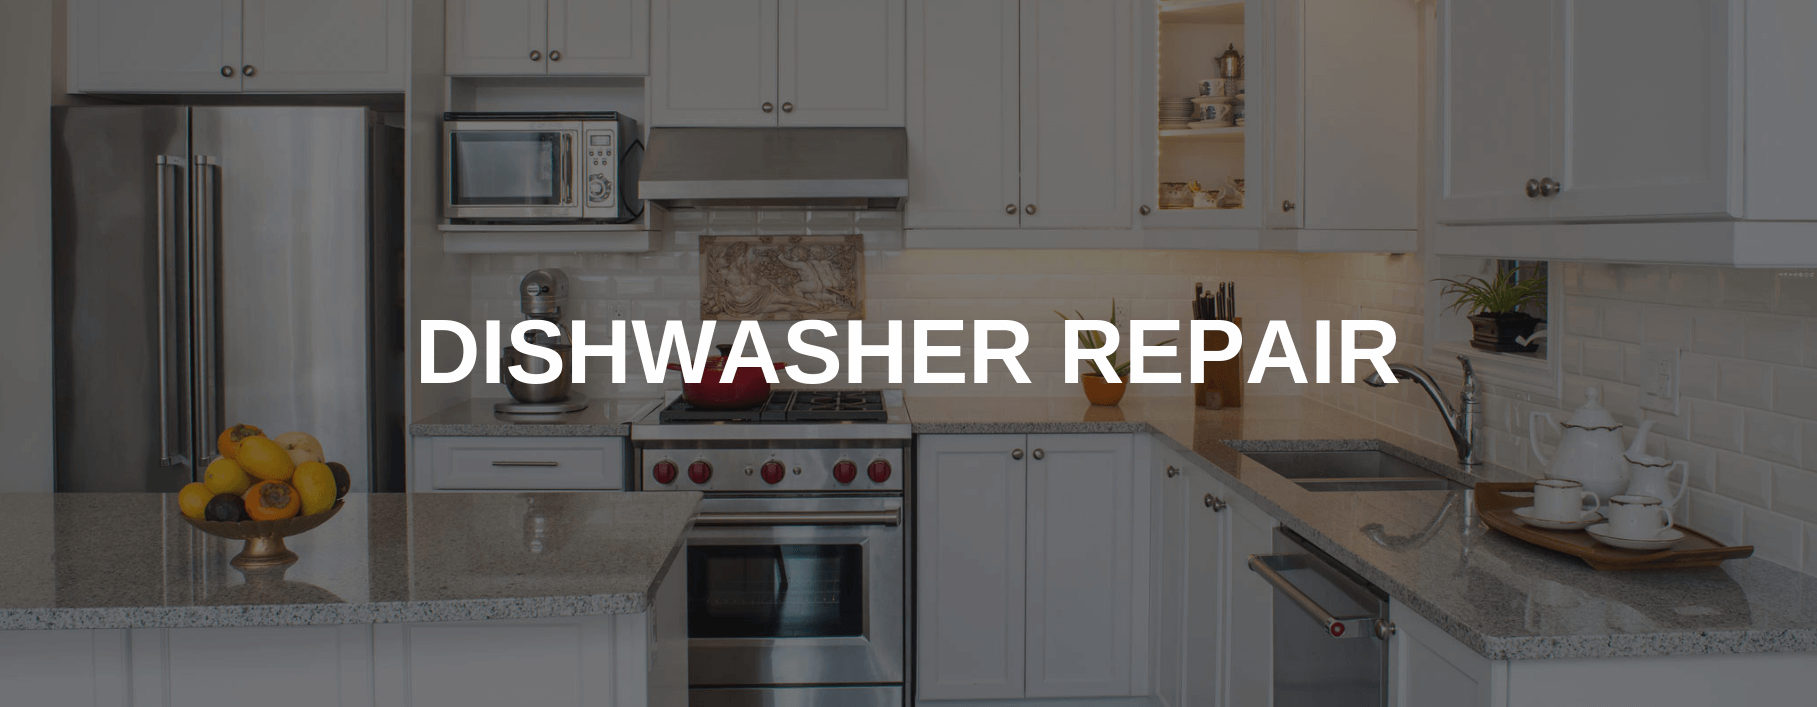 dishwasher repair fremont